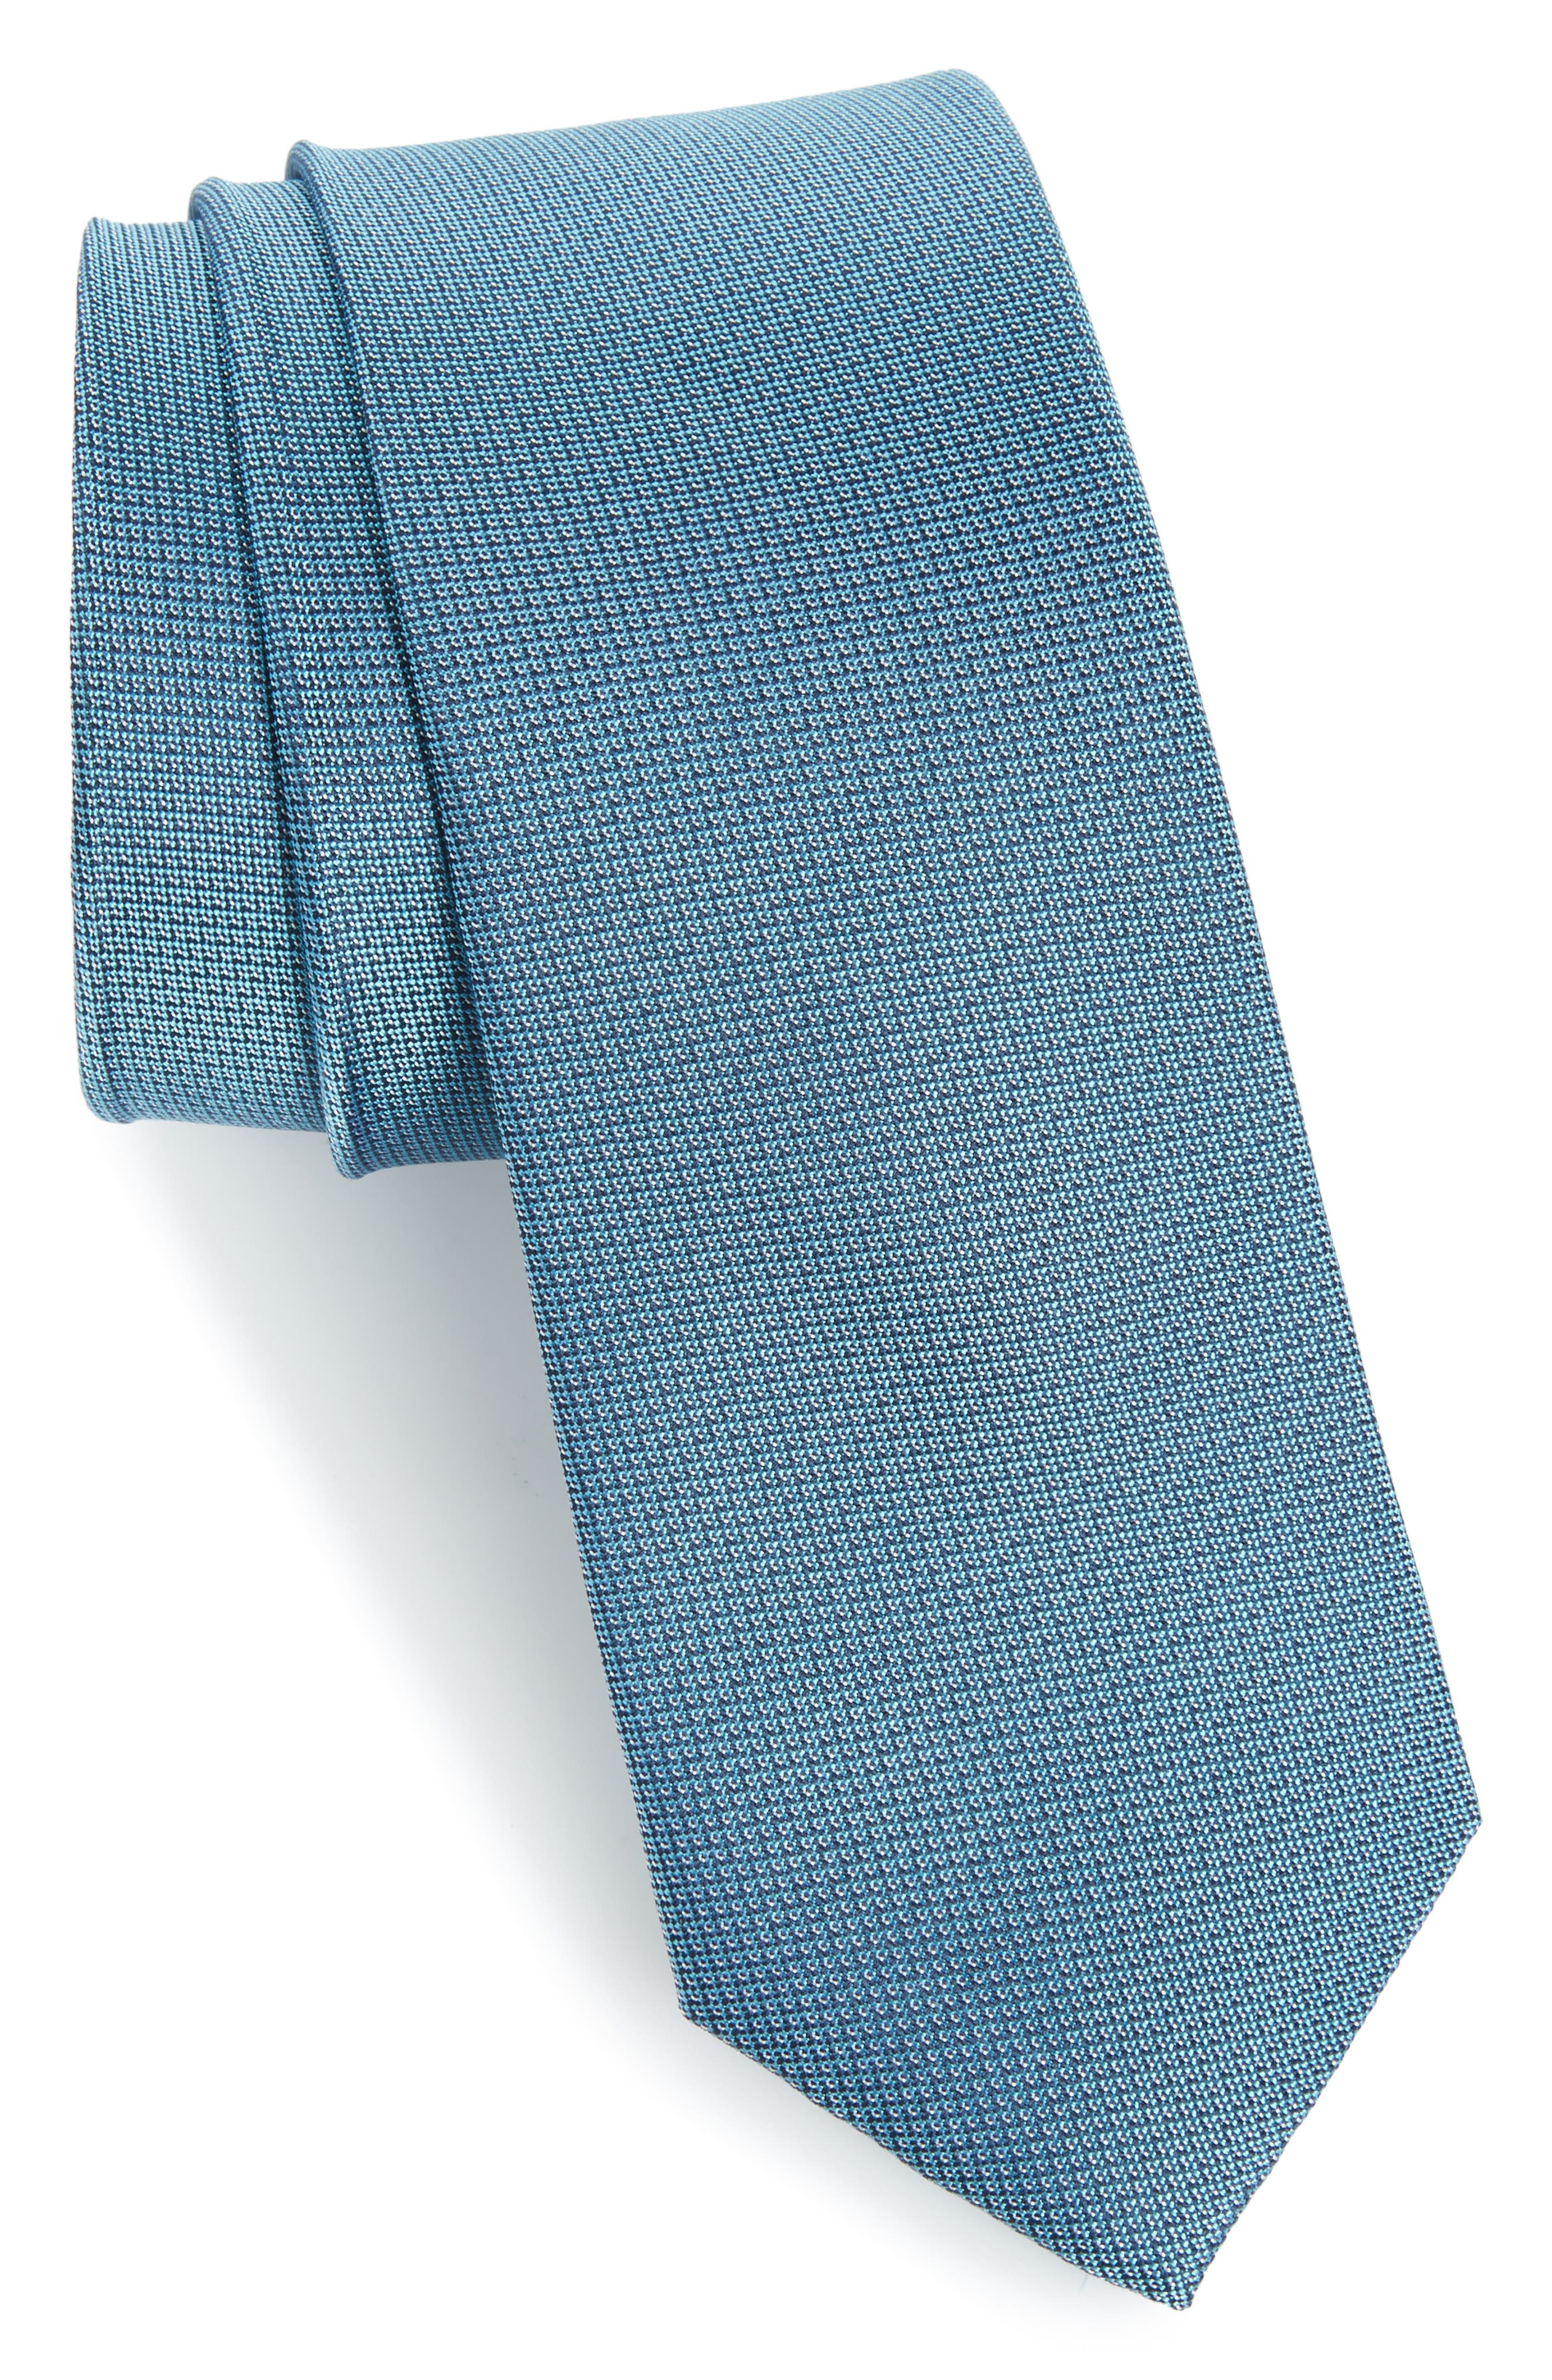 Eternity Unsolid Solid Silk Skinny Tie,                             Main thumbnail 1, color,                             Aqua/ Teal